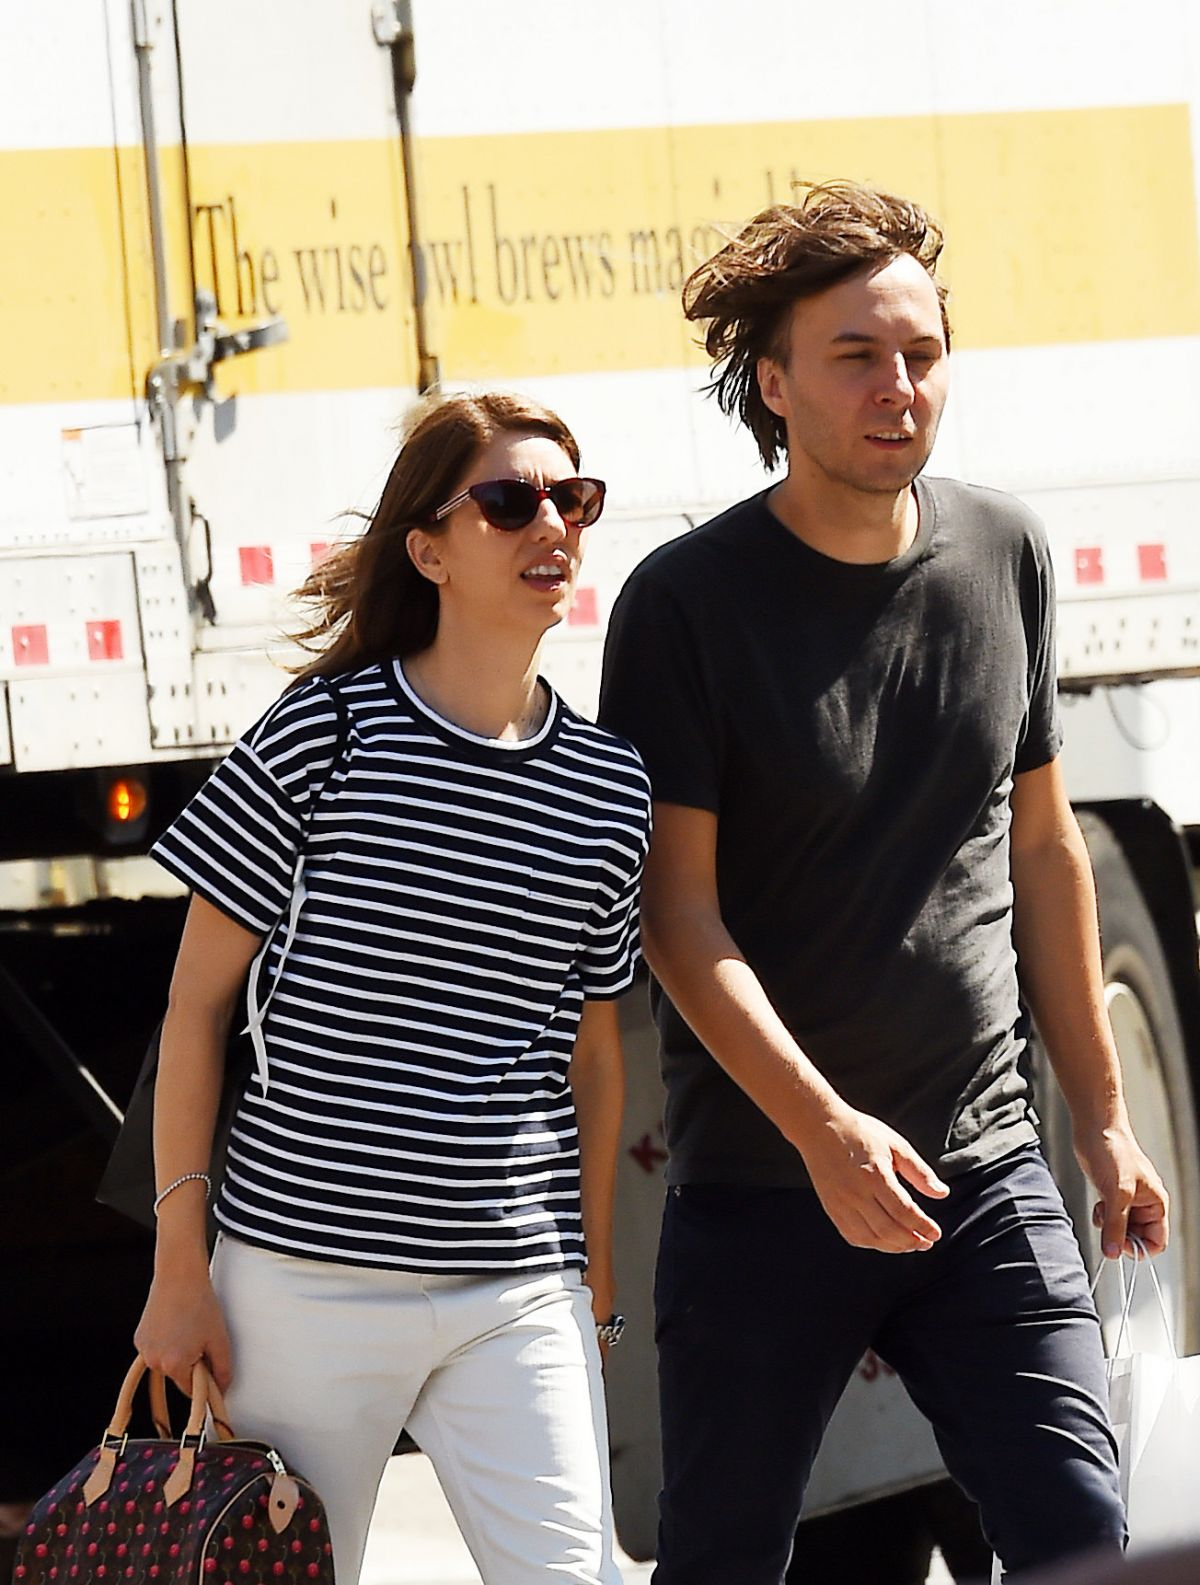 Sofia Coppola out and about in NY City